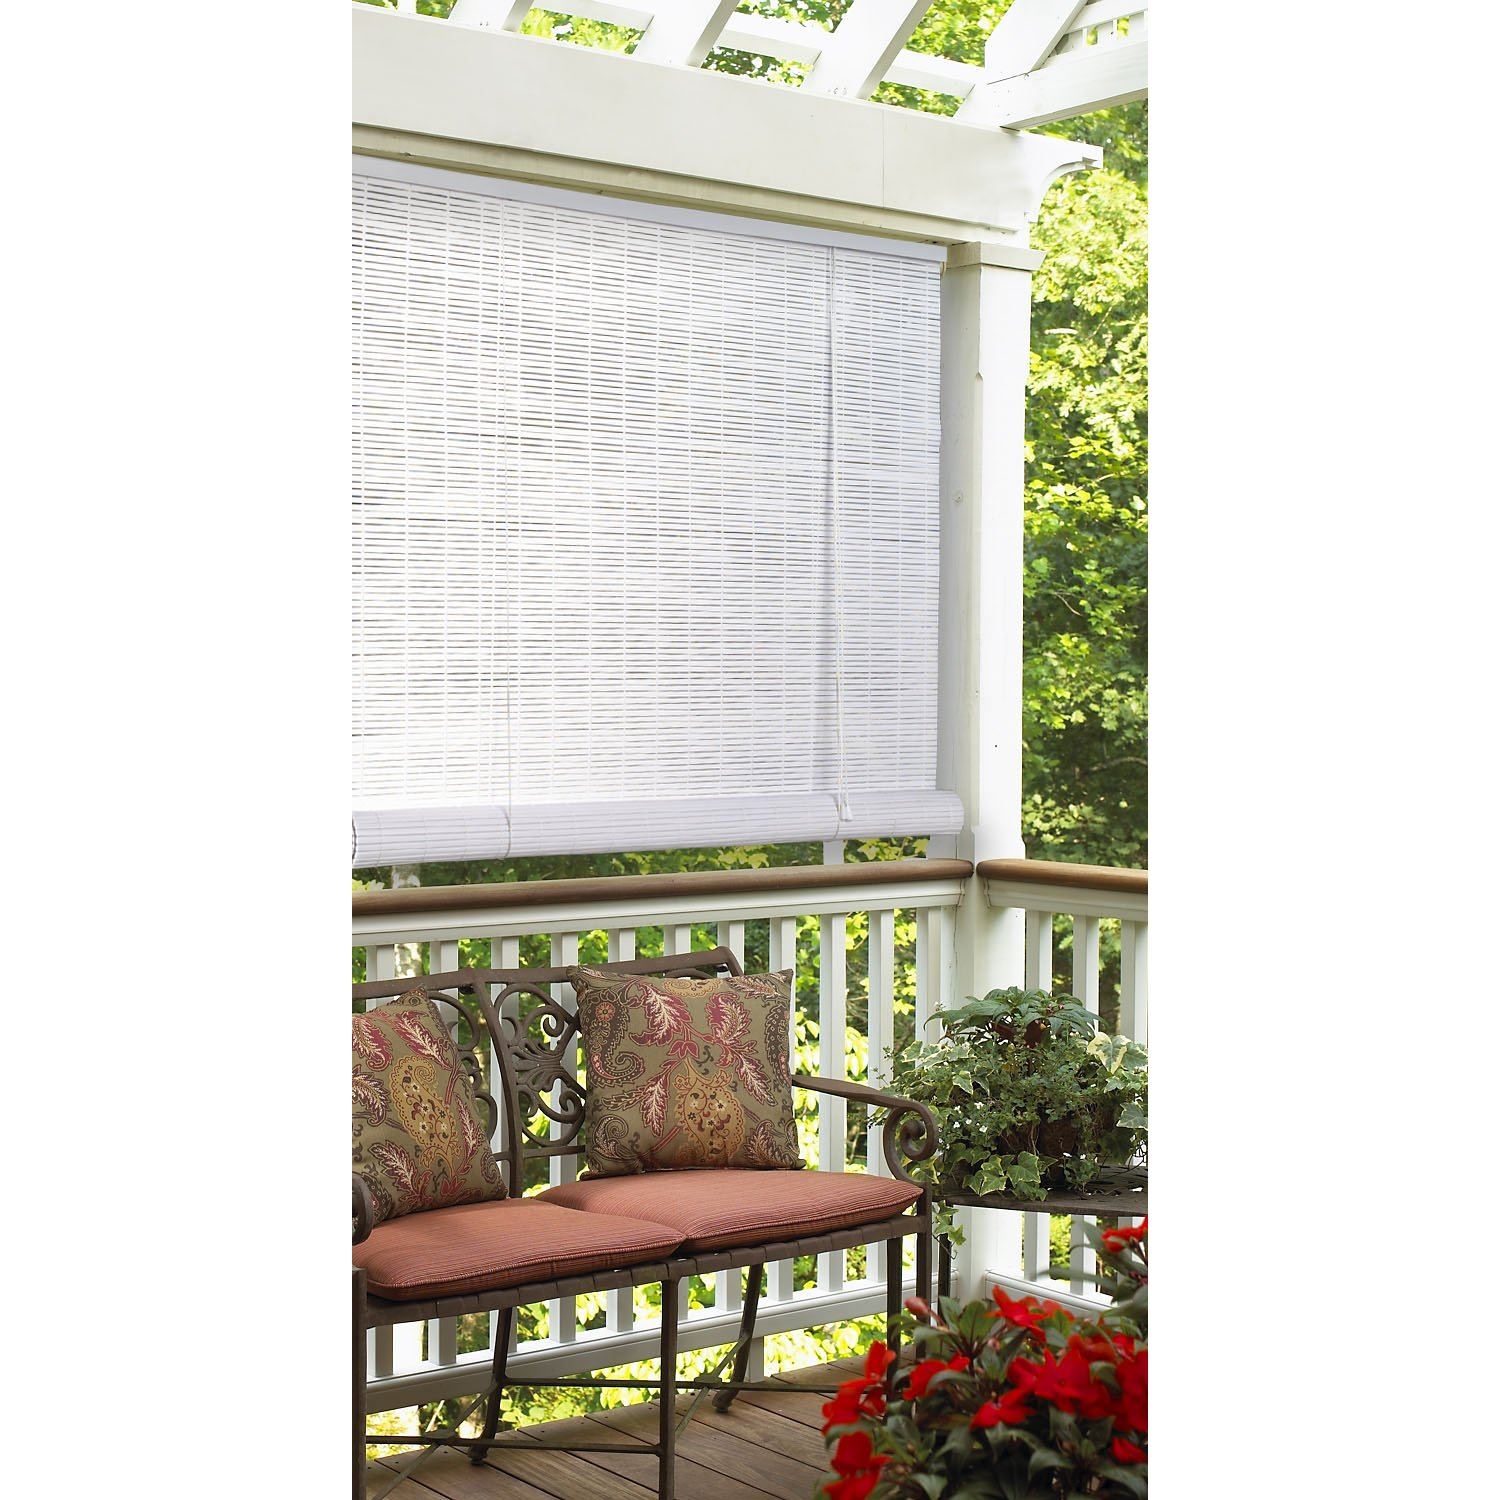 Menards Fence Panels Menards Window Blinds Window Shades Lowes